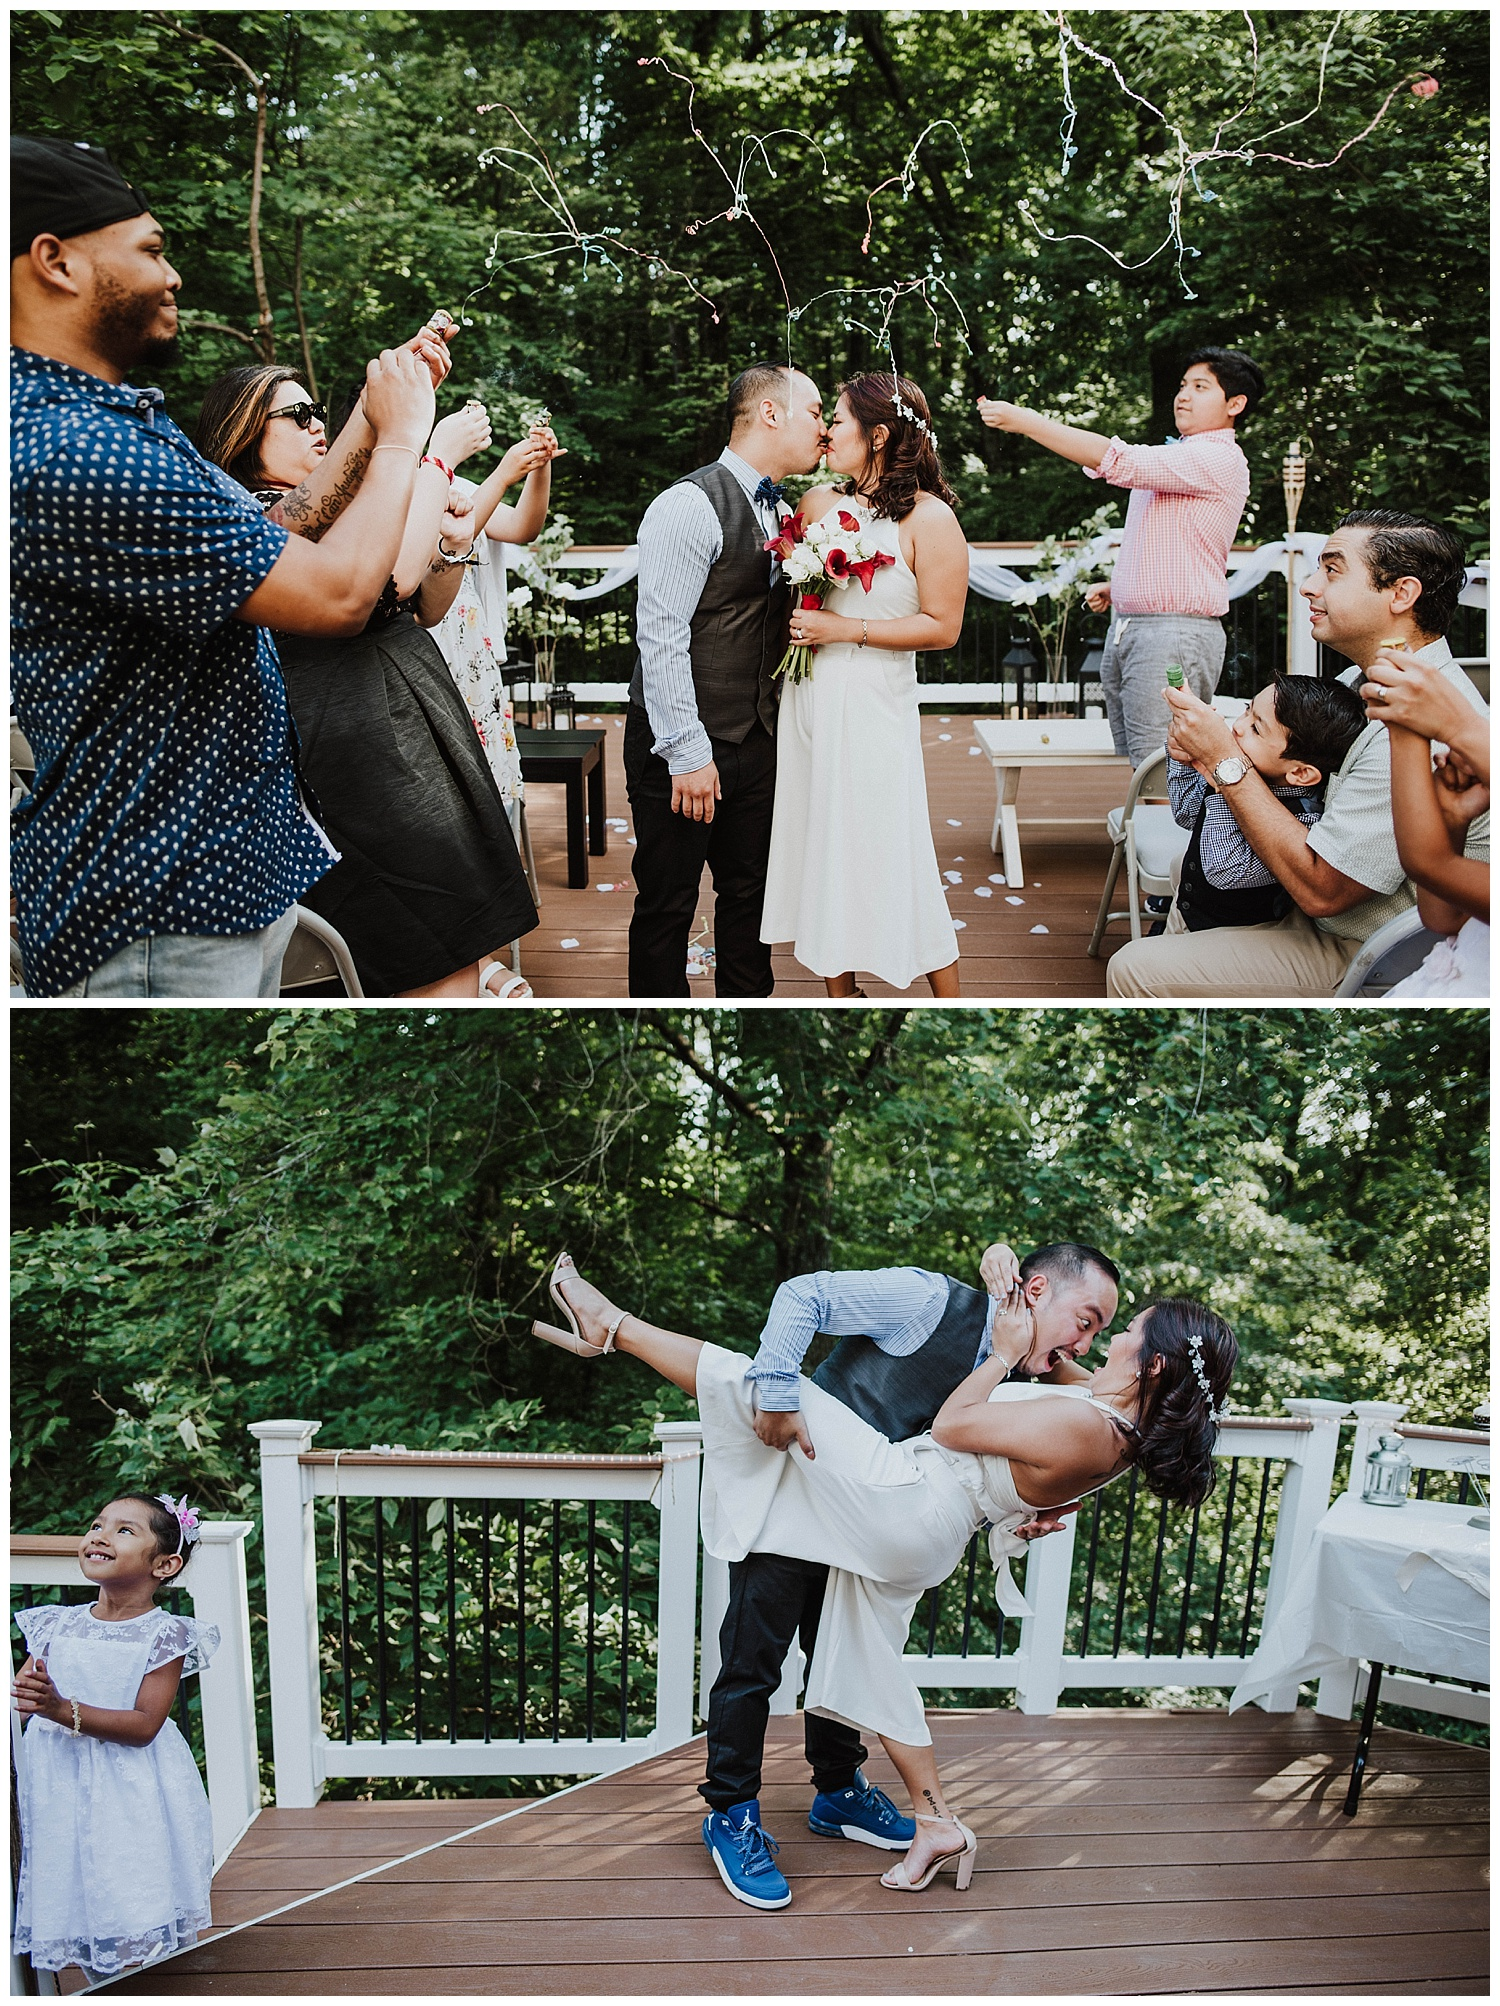 wedding-exit-dip-string-backyard-wedding-herndon.jpg